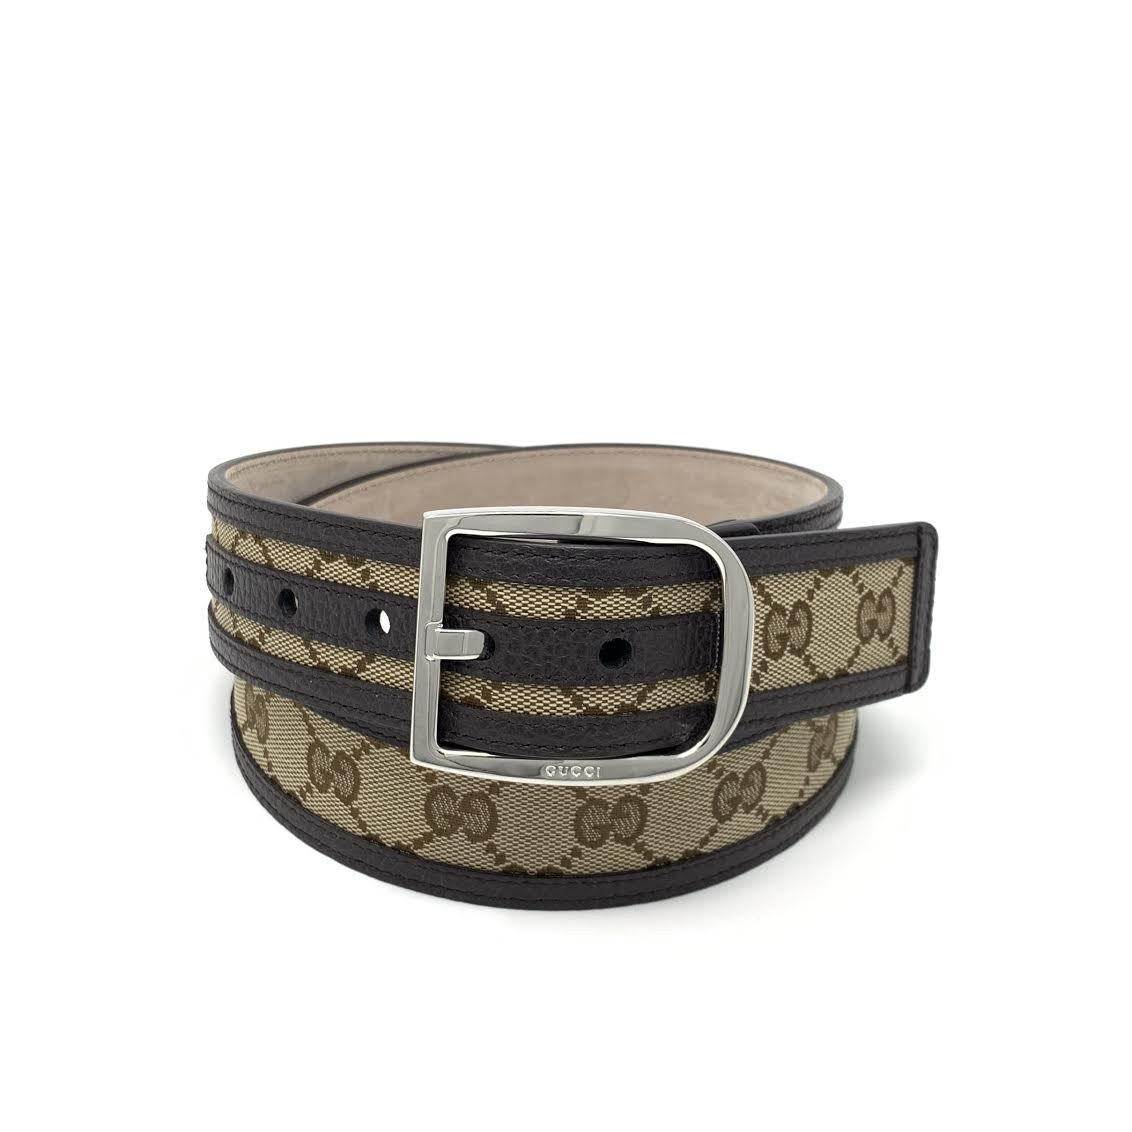 Gucci Belt GG Supreme Leather Trimmed 1.5W Beige/Ebony